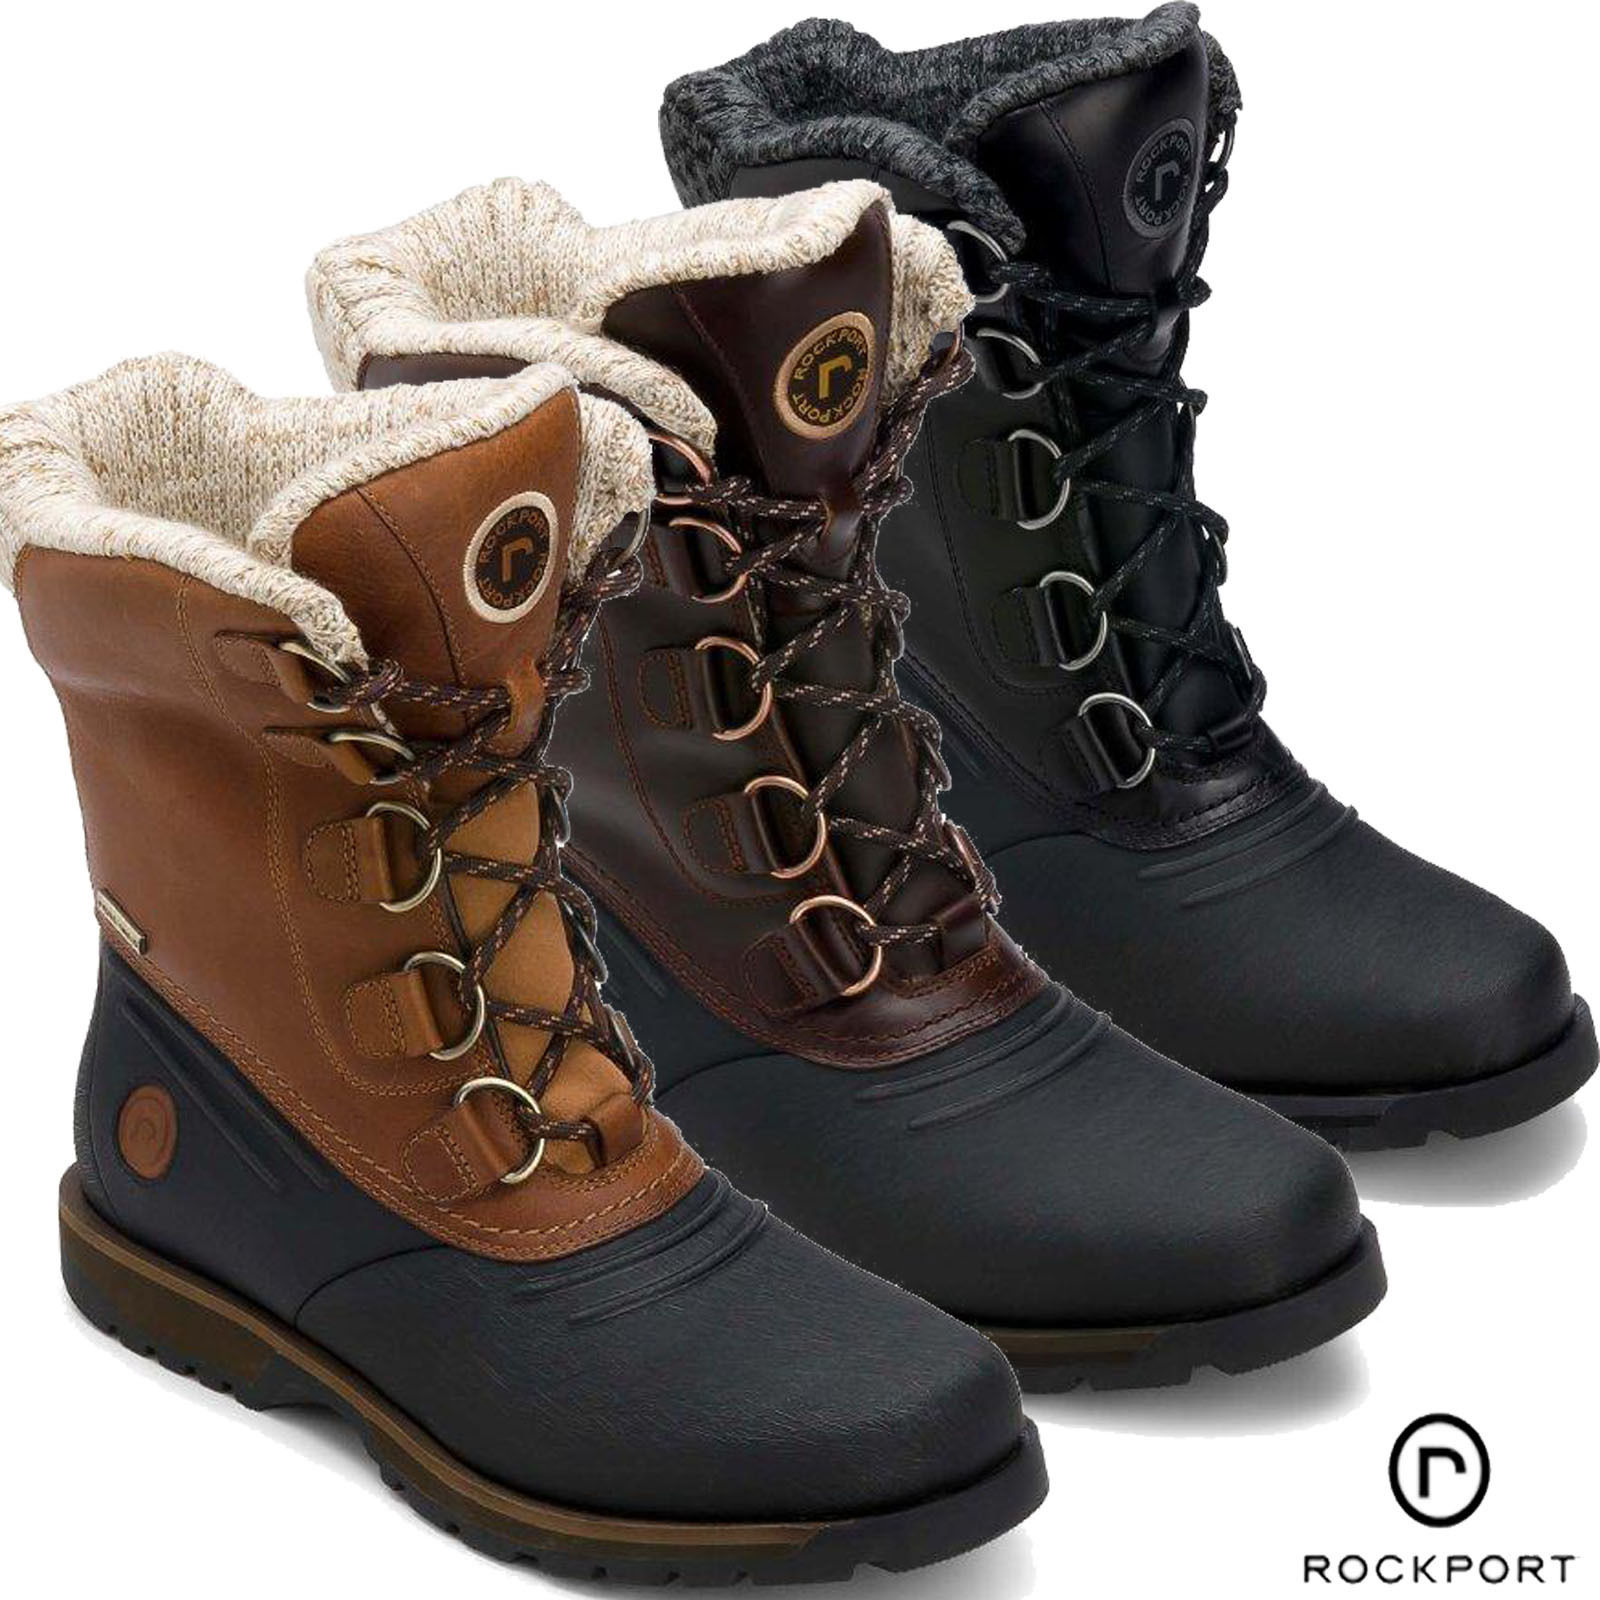 Mens Winter Snow Boots jw4rkzDu